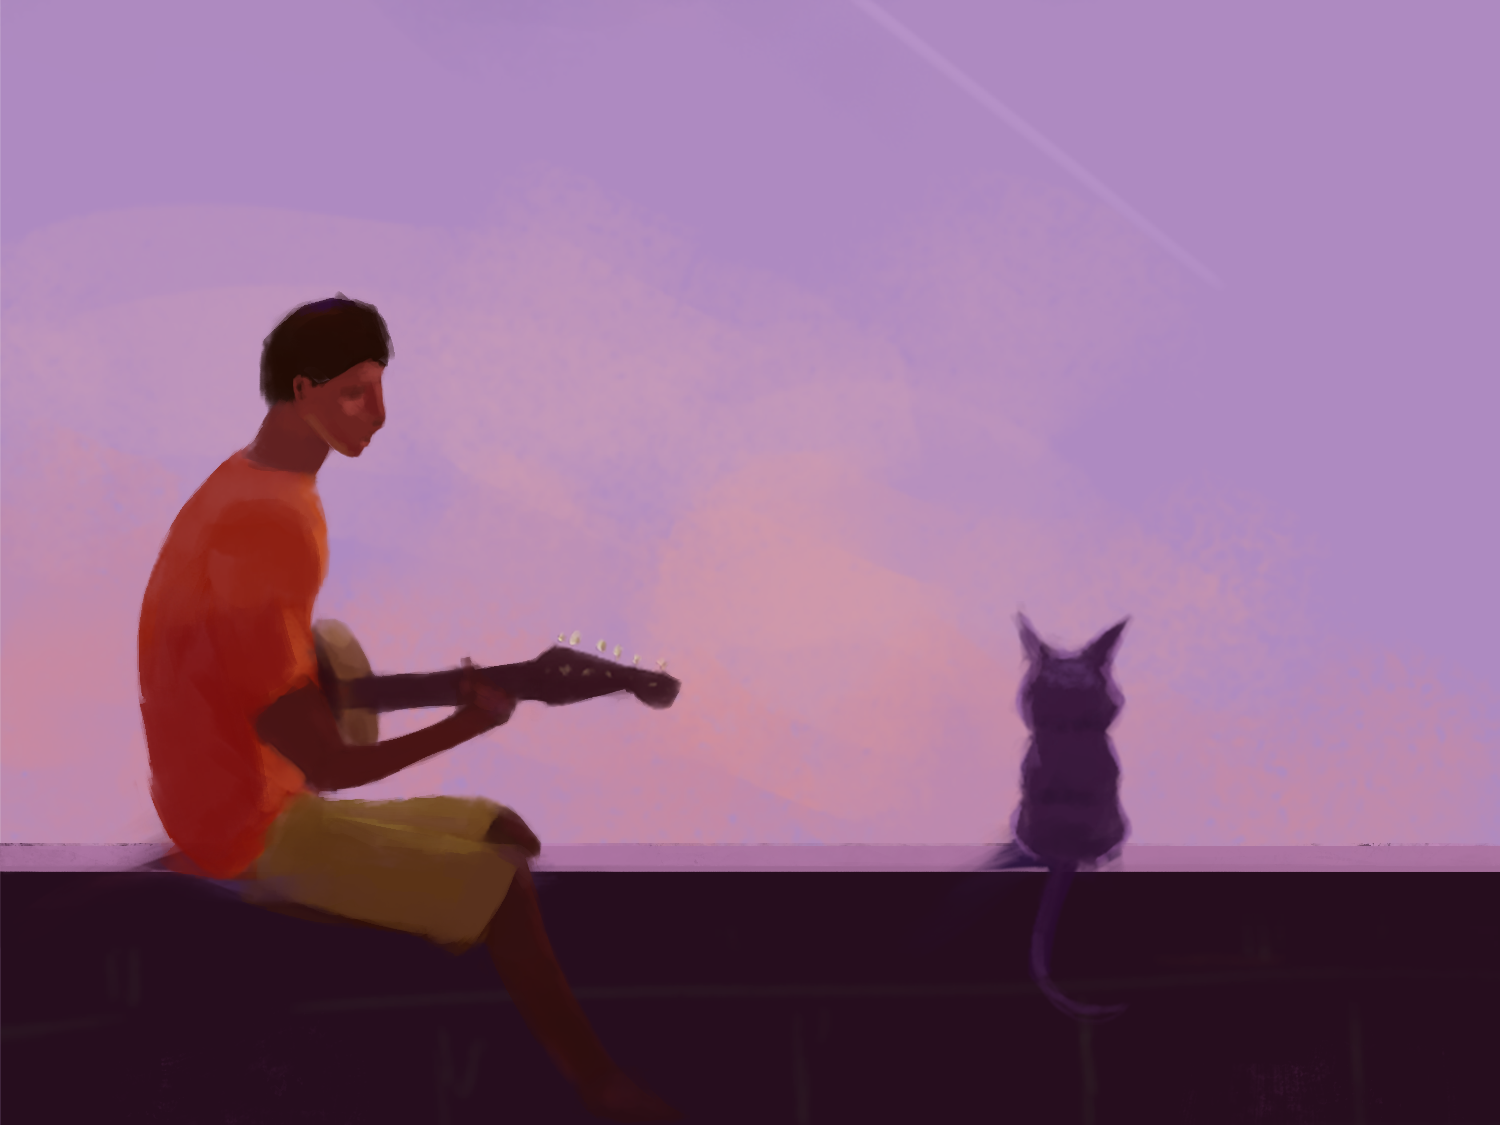 Dusk burnout cat guitar practice illustration